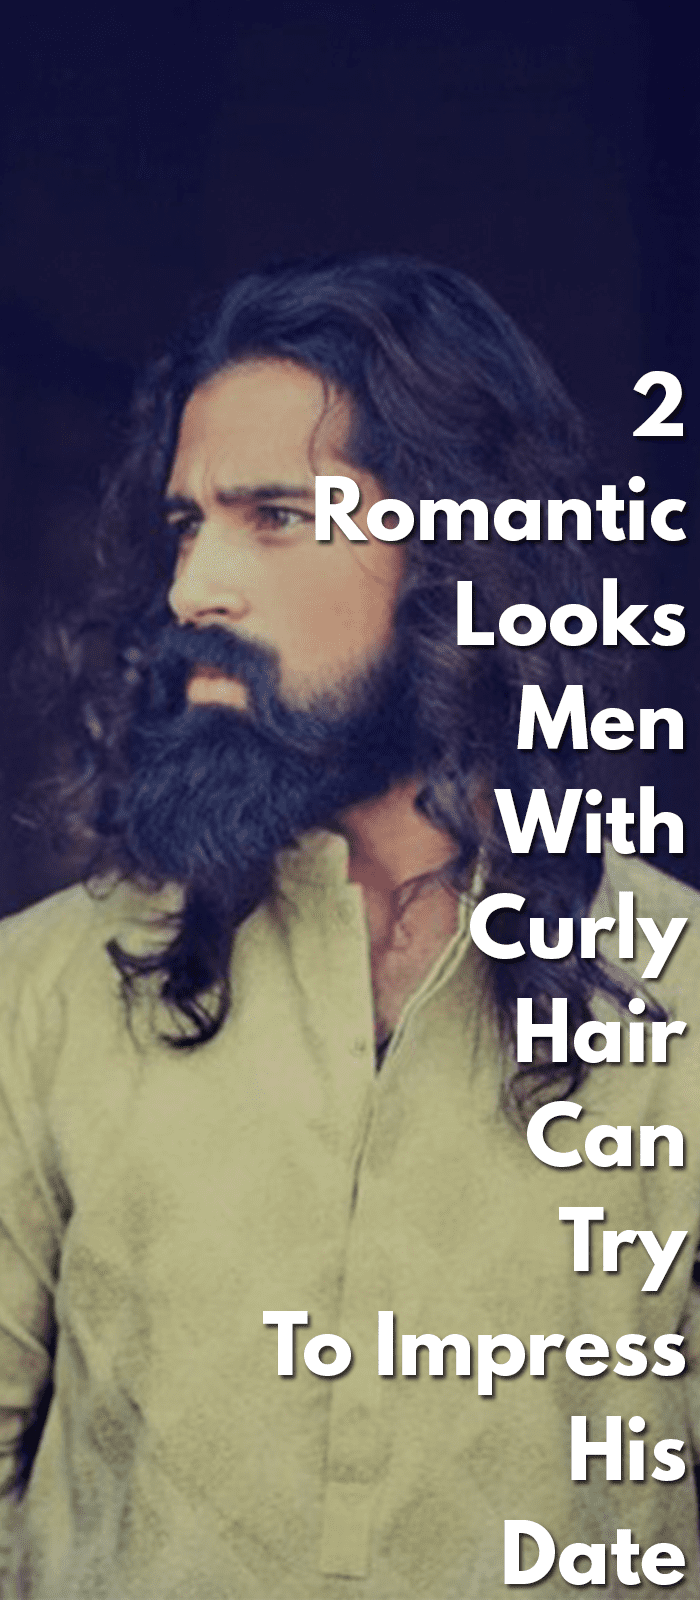 2-Romantic-Looks-Men-With-Curly-Hair-Can-Try-To-Impress-His-Date